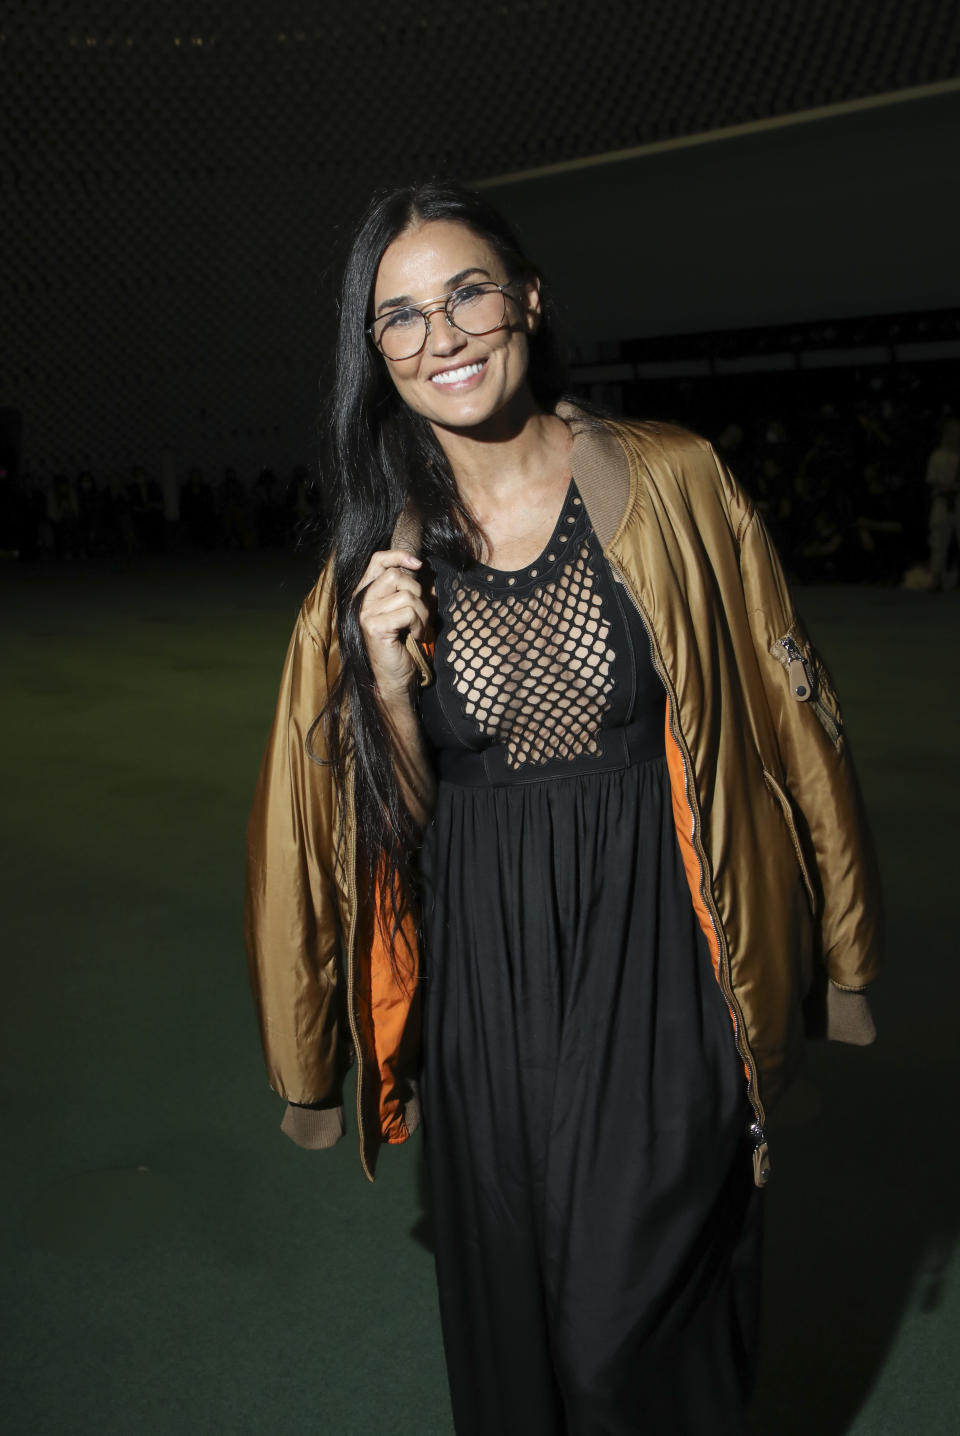 Demi Moore arrives for the Stella McCartney Spring-Summer 2022 ready-to-wear fashion show presented in Paris, Monday, Oct. 4, 2021. (Photo by Vianney Le Caer/Invision/AP)